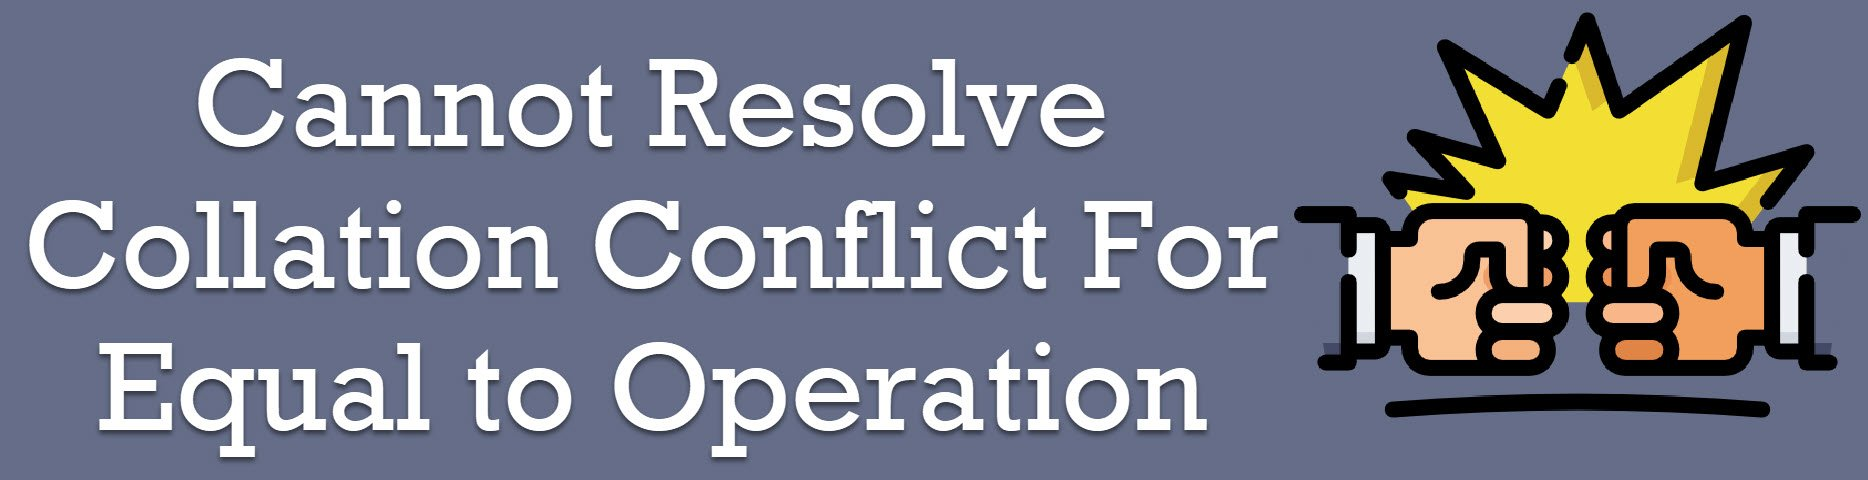 collation conflict